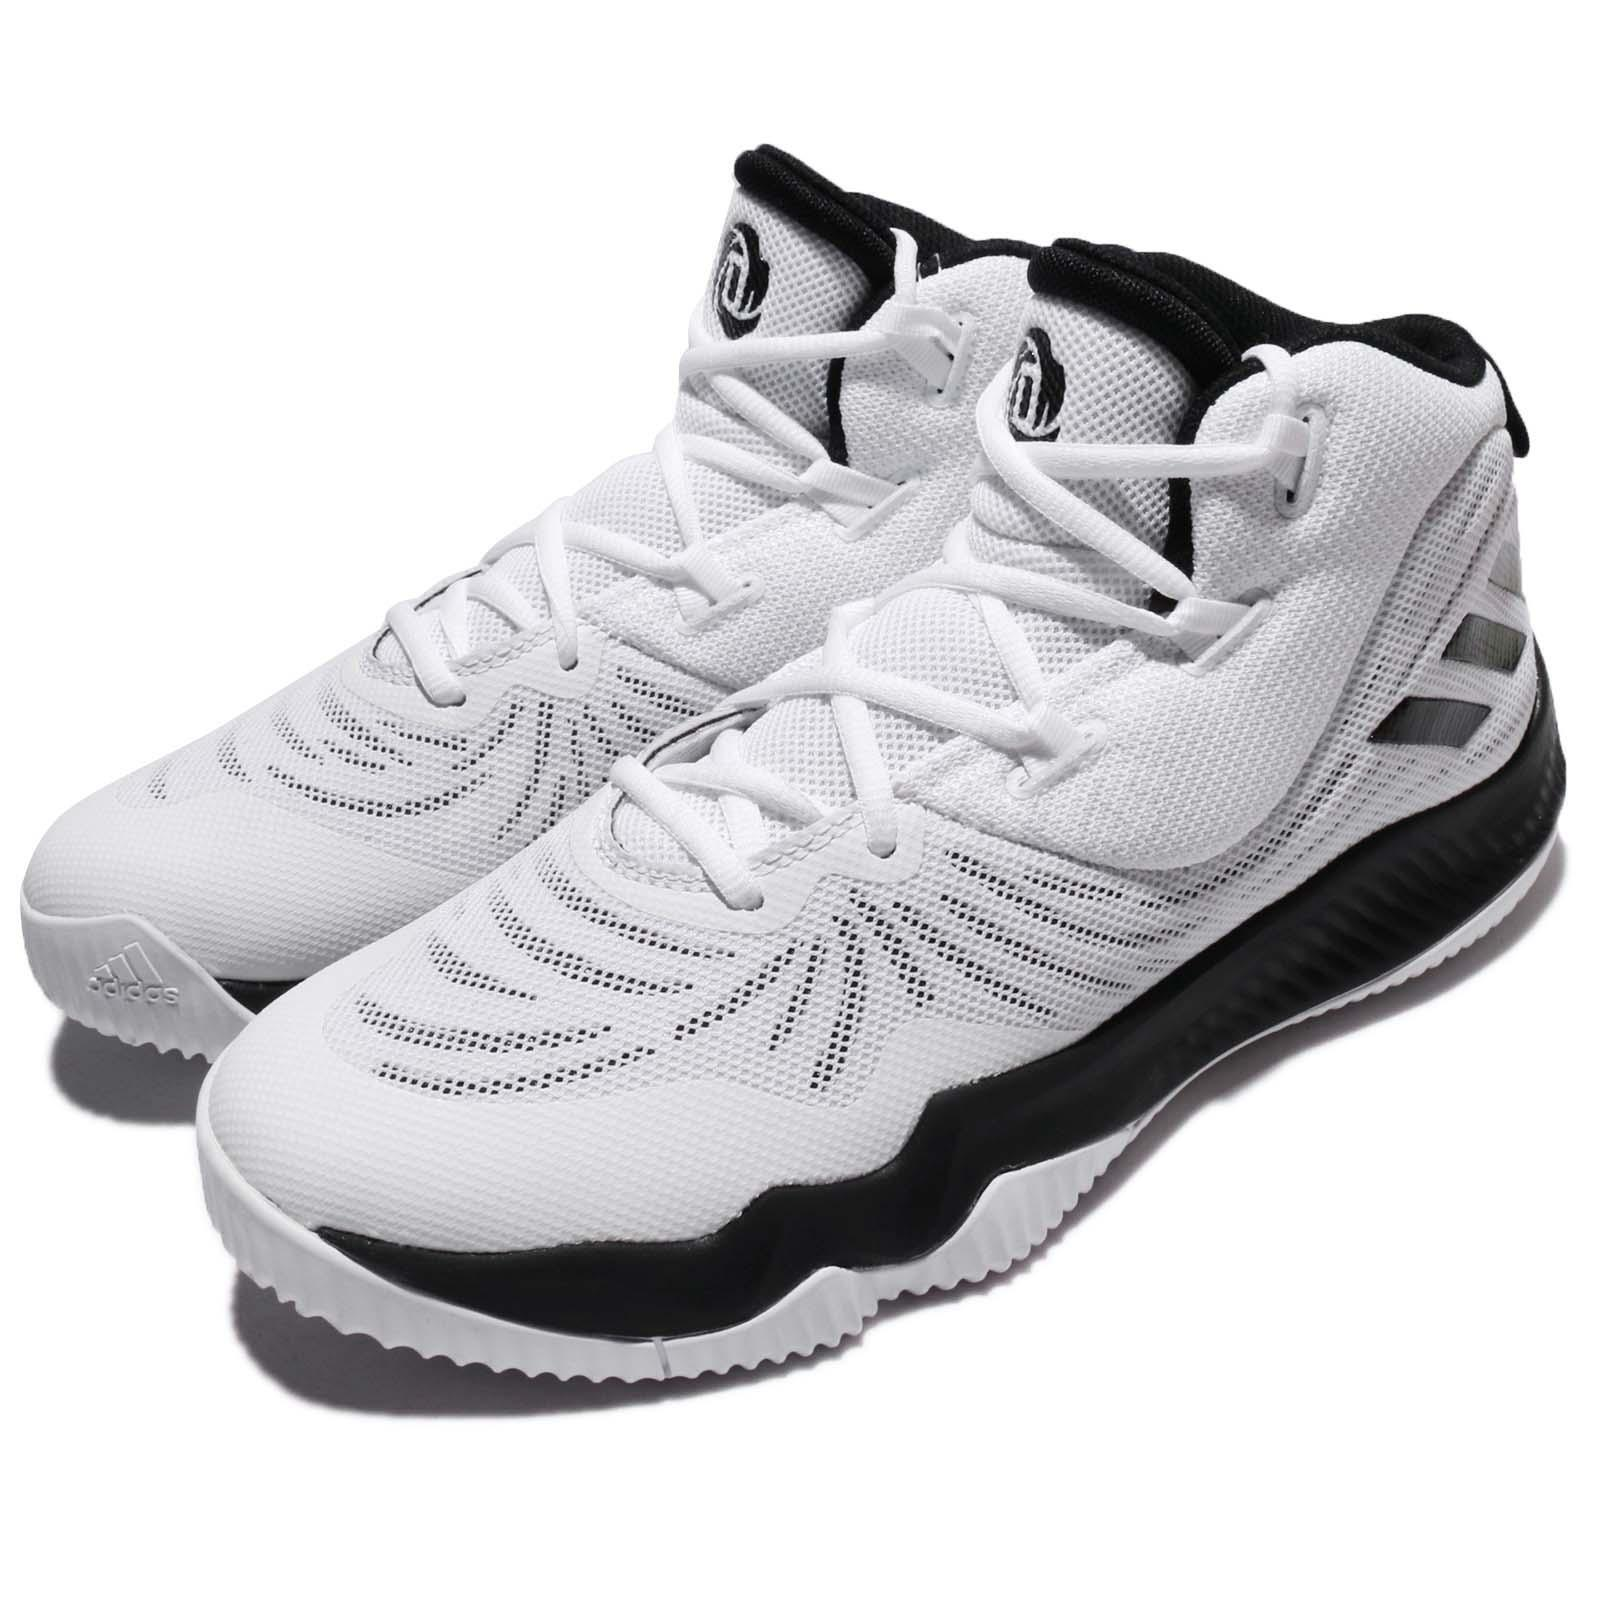 adidas D Rose Dominate III 3 Derrick Blanc Noir Men Basketball Chaussures CQ0204